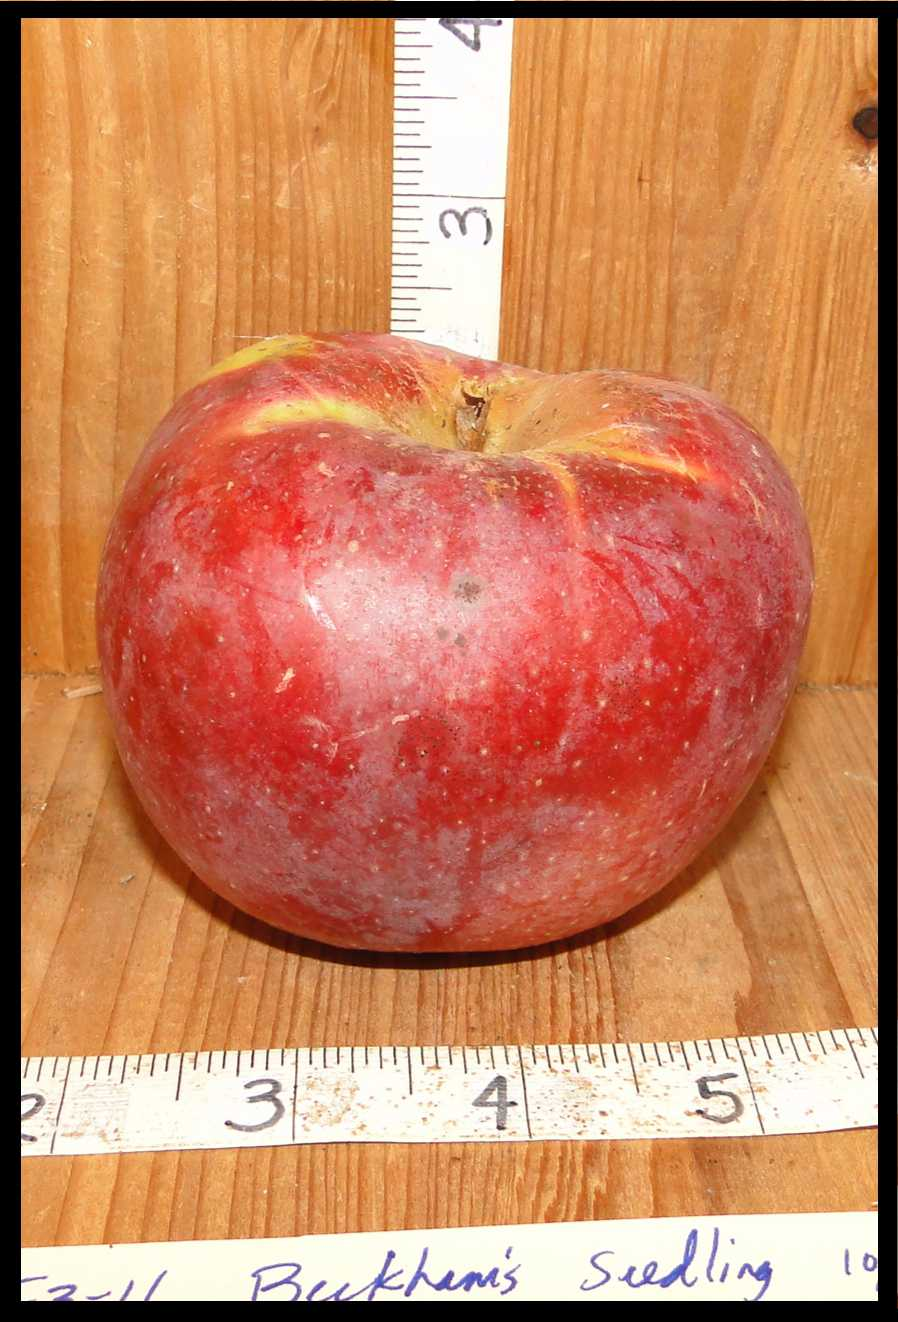 squat red apple with yellow streaks and a white haze over the skin